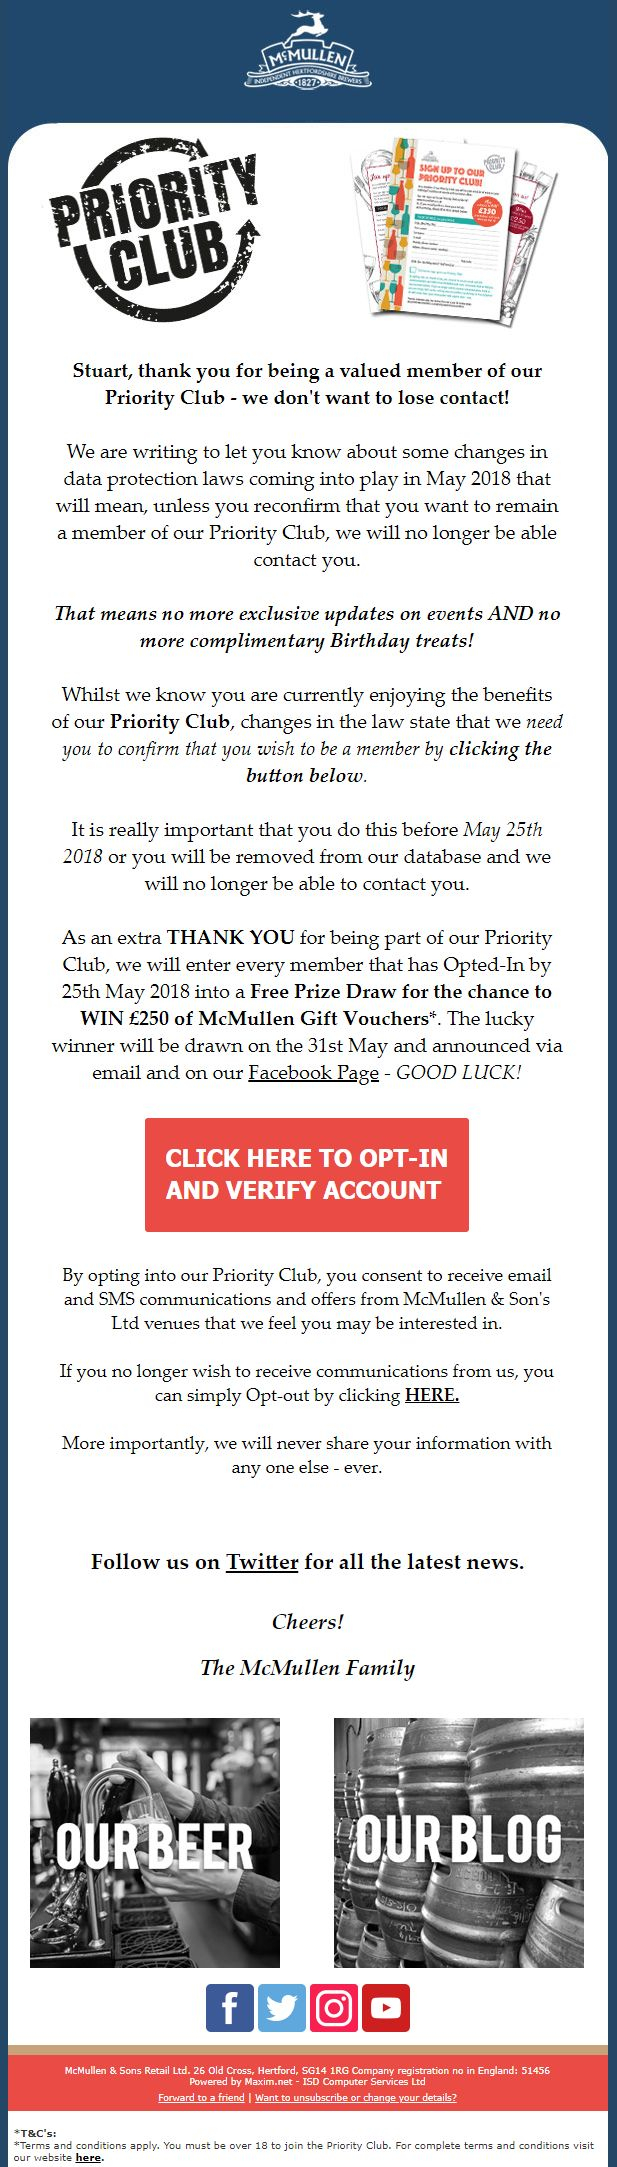 gdpr letter template Collection-GDPR McMullen pubs Priority Club email asking fro reconfirming consent ahead of GDPR 19-j